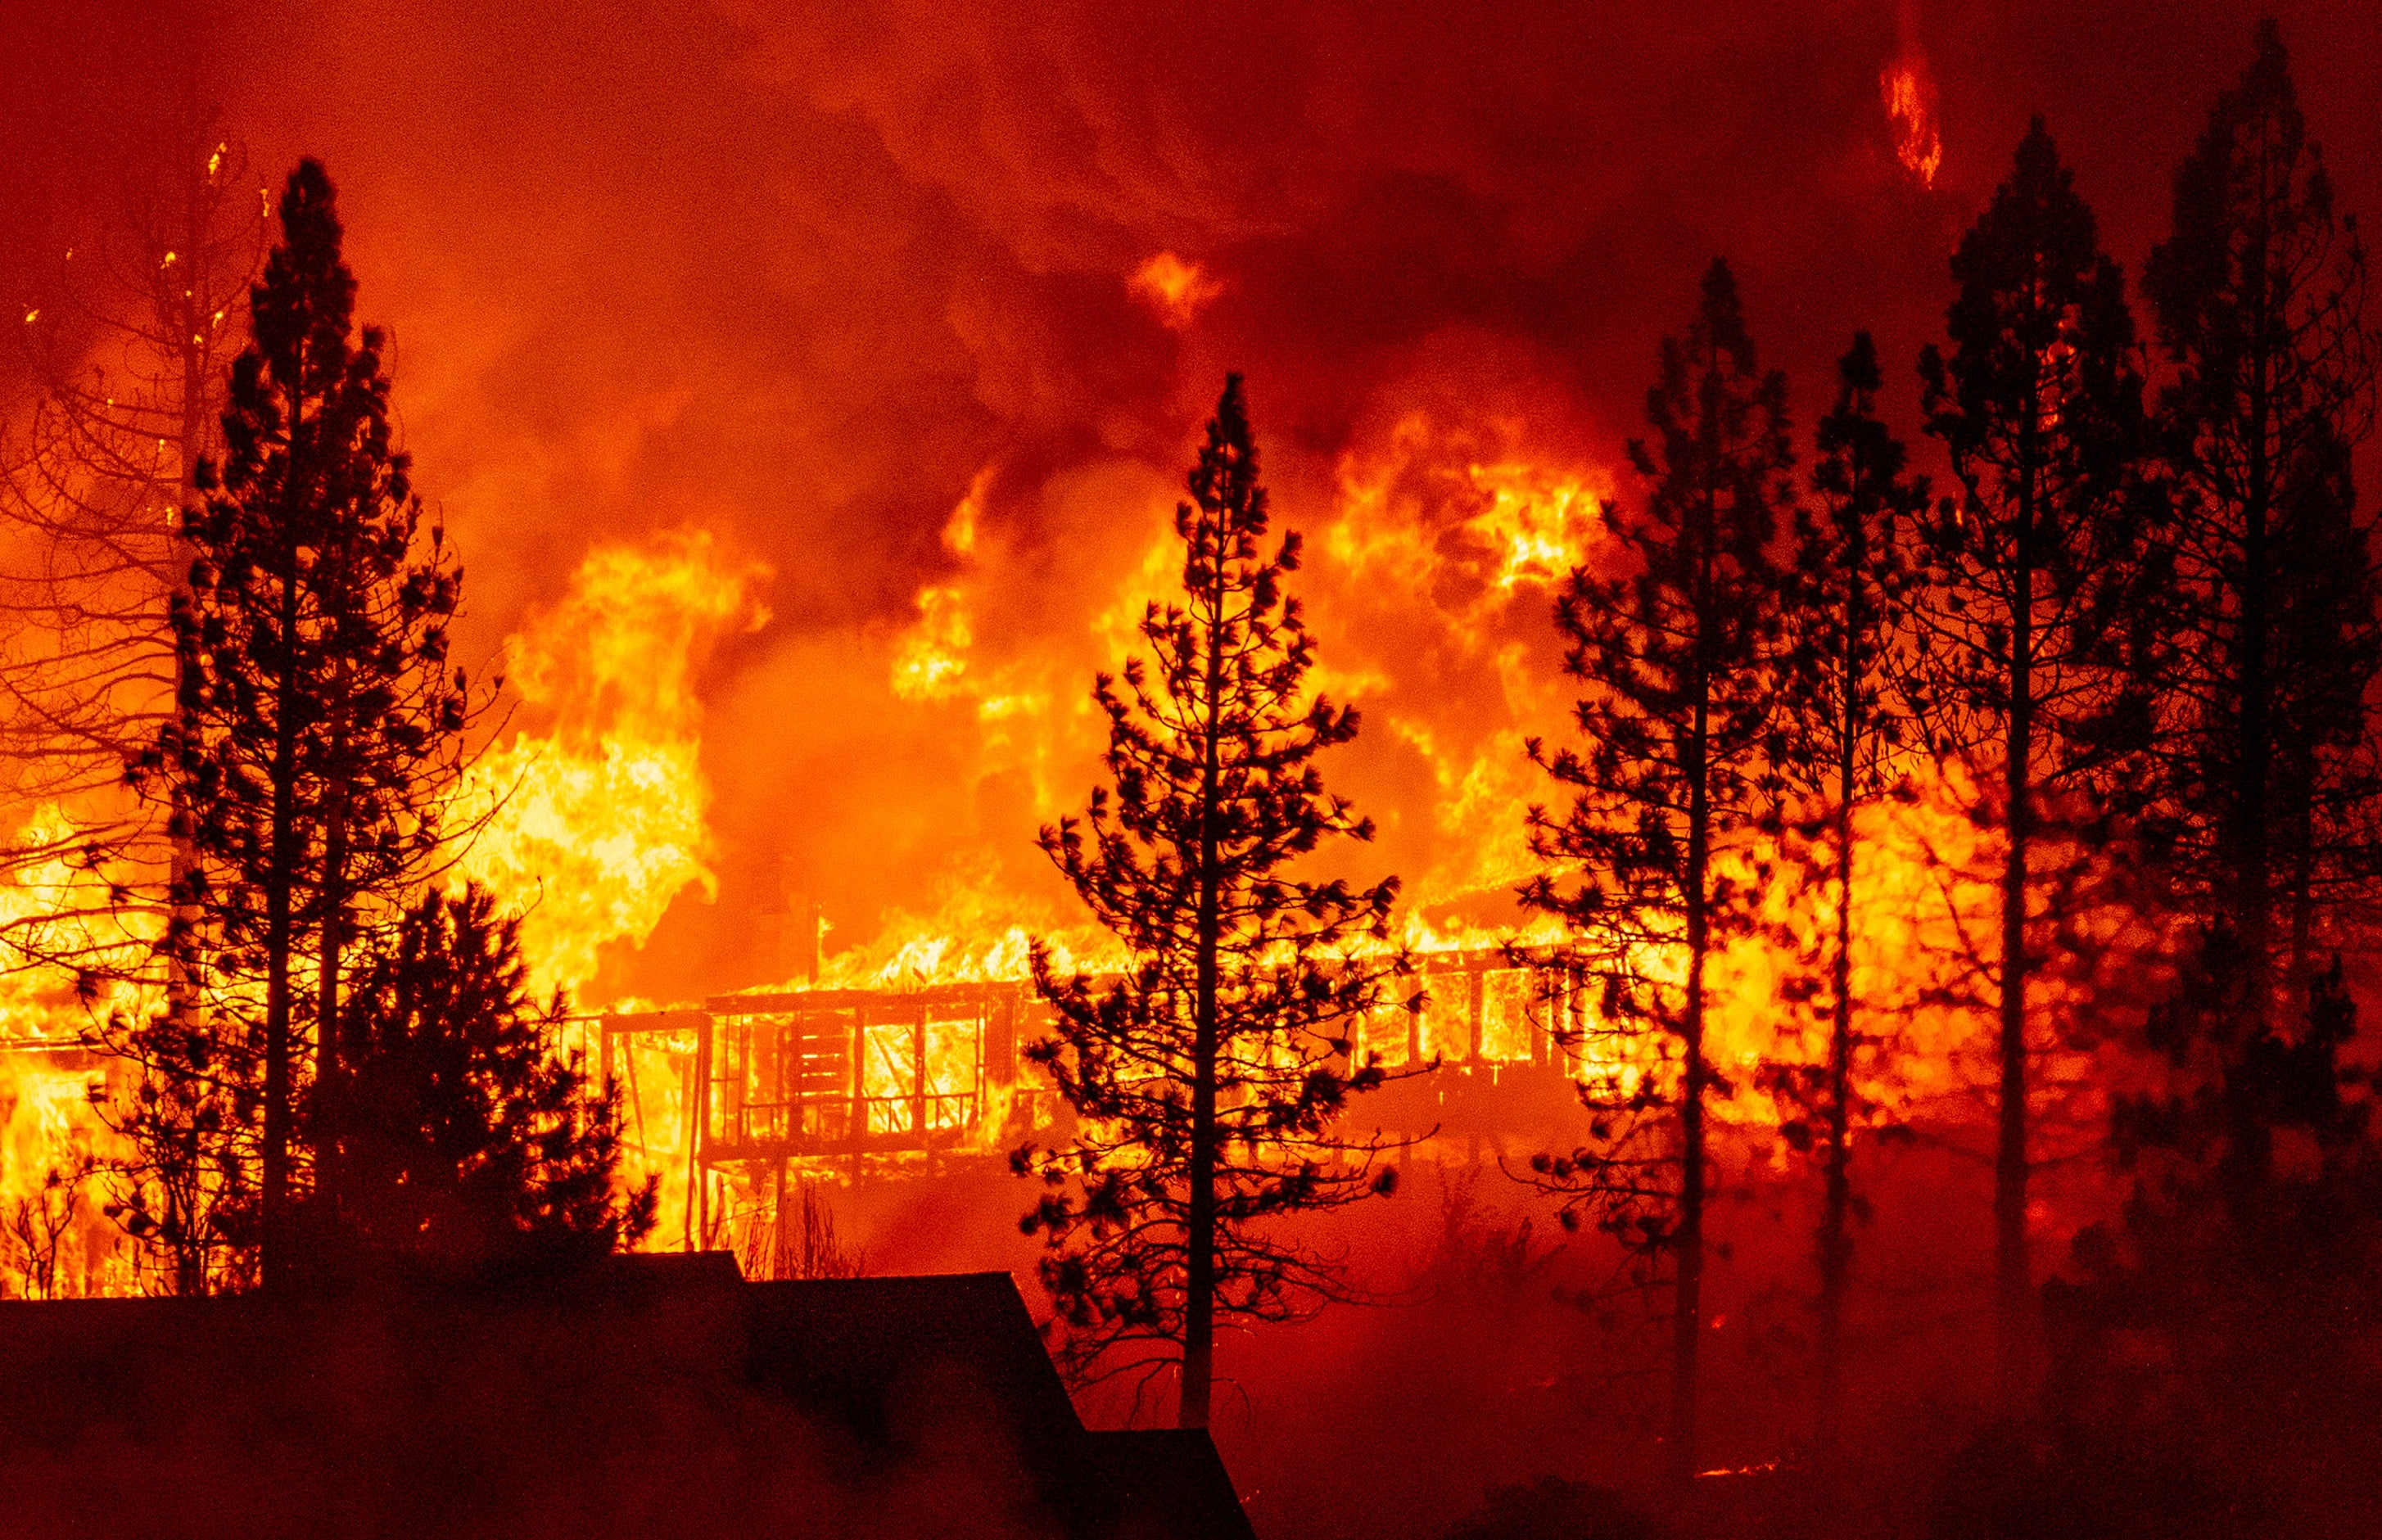 Severe Wildfires Raise the Chance for Future Monstrous Blazes - Scientific  American